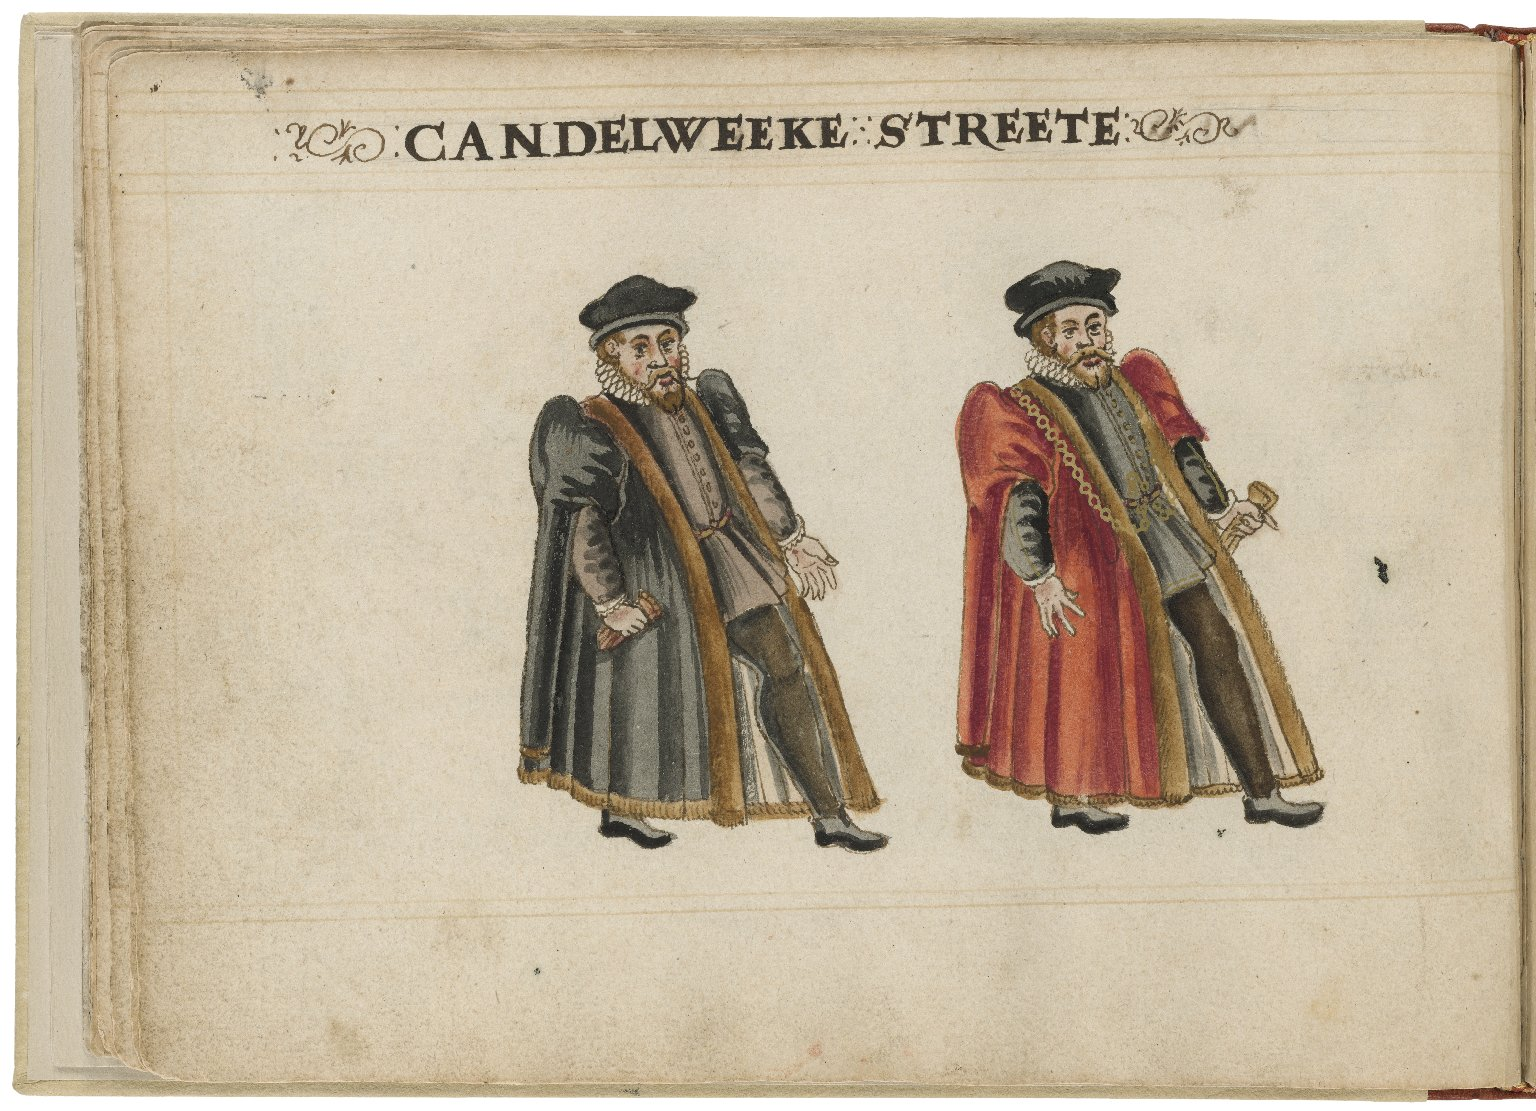 Watercolour painting of the alderman and deputy in charge of Candlewick Street Ward by Hugh Alley. Image courtesy of the Folger Digital Image Collection.